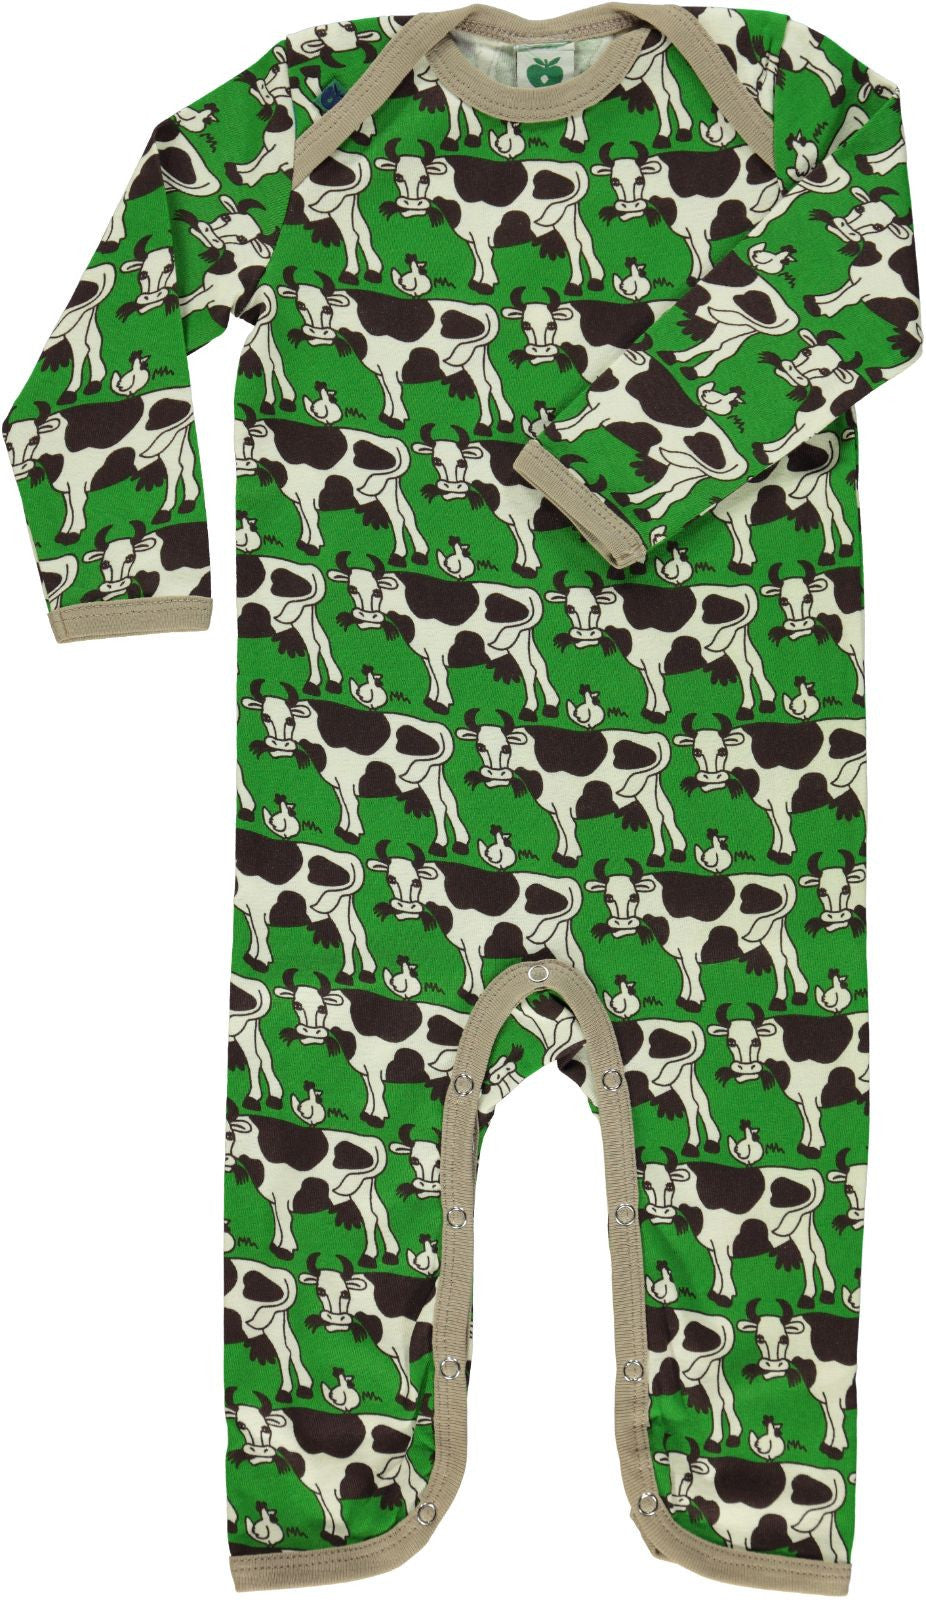 Smafolk one-piece with cows